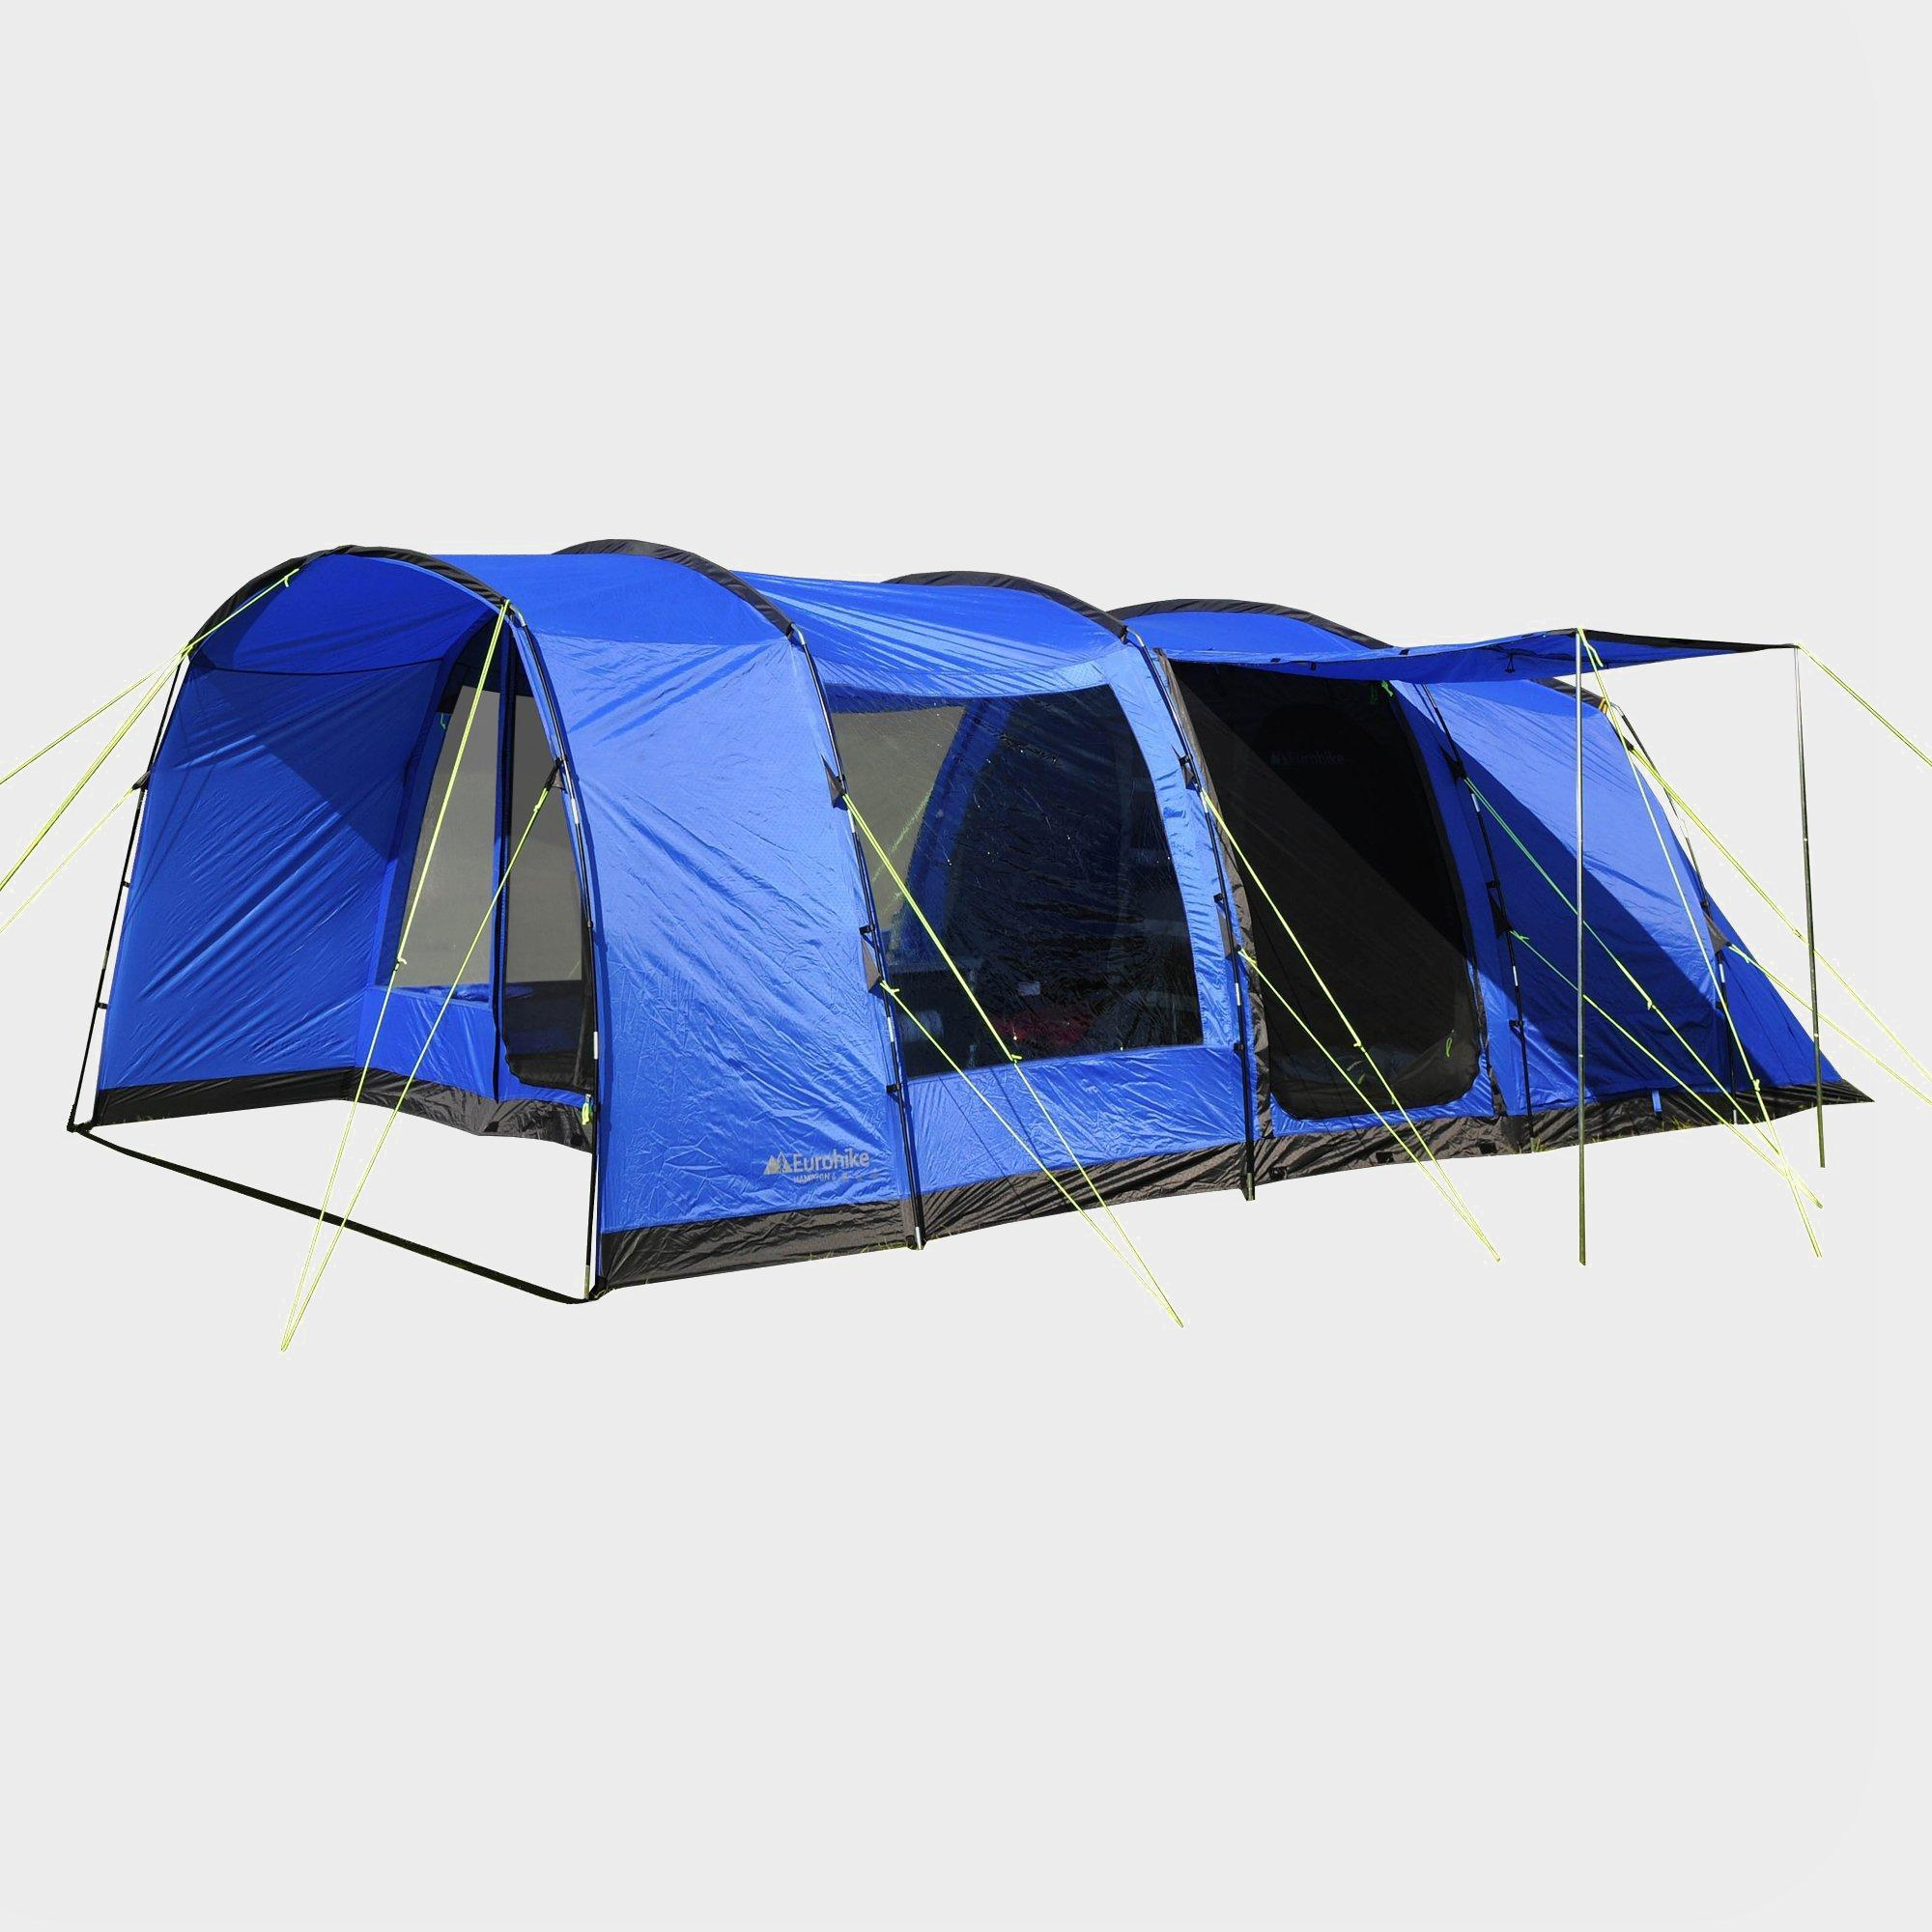 H&ton 6 Person Tent  sc 1 st  Millets & 6 Man Tents u0026 6 Person Tents | Family Tents | Millets